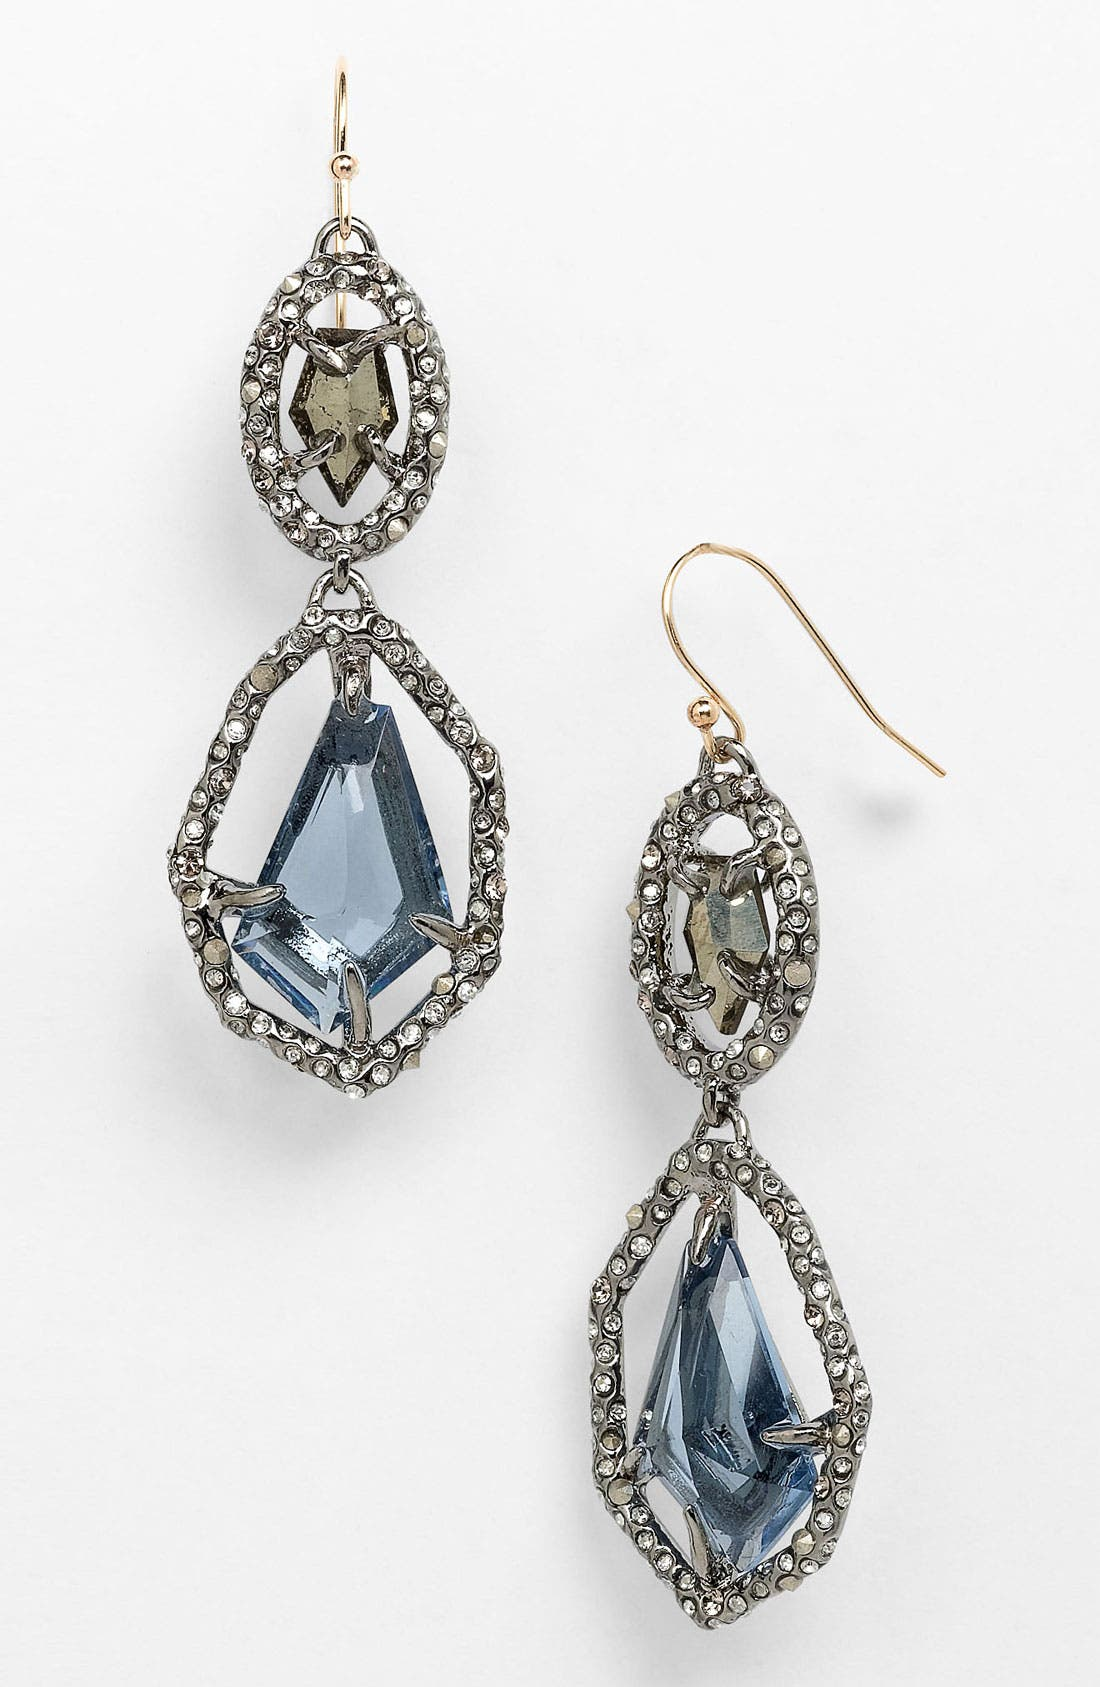 Main Image - Alexis Bittar 'Miss Havisham - Delano' Deco Drop Earrings (Nordstrom Exclusive)